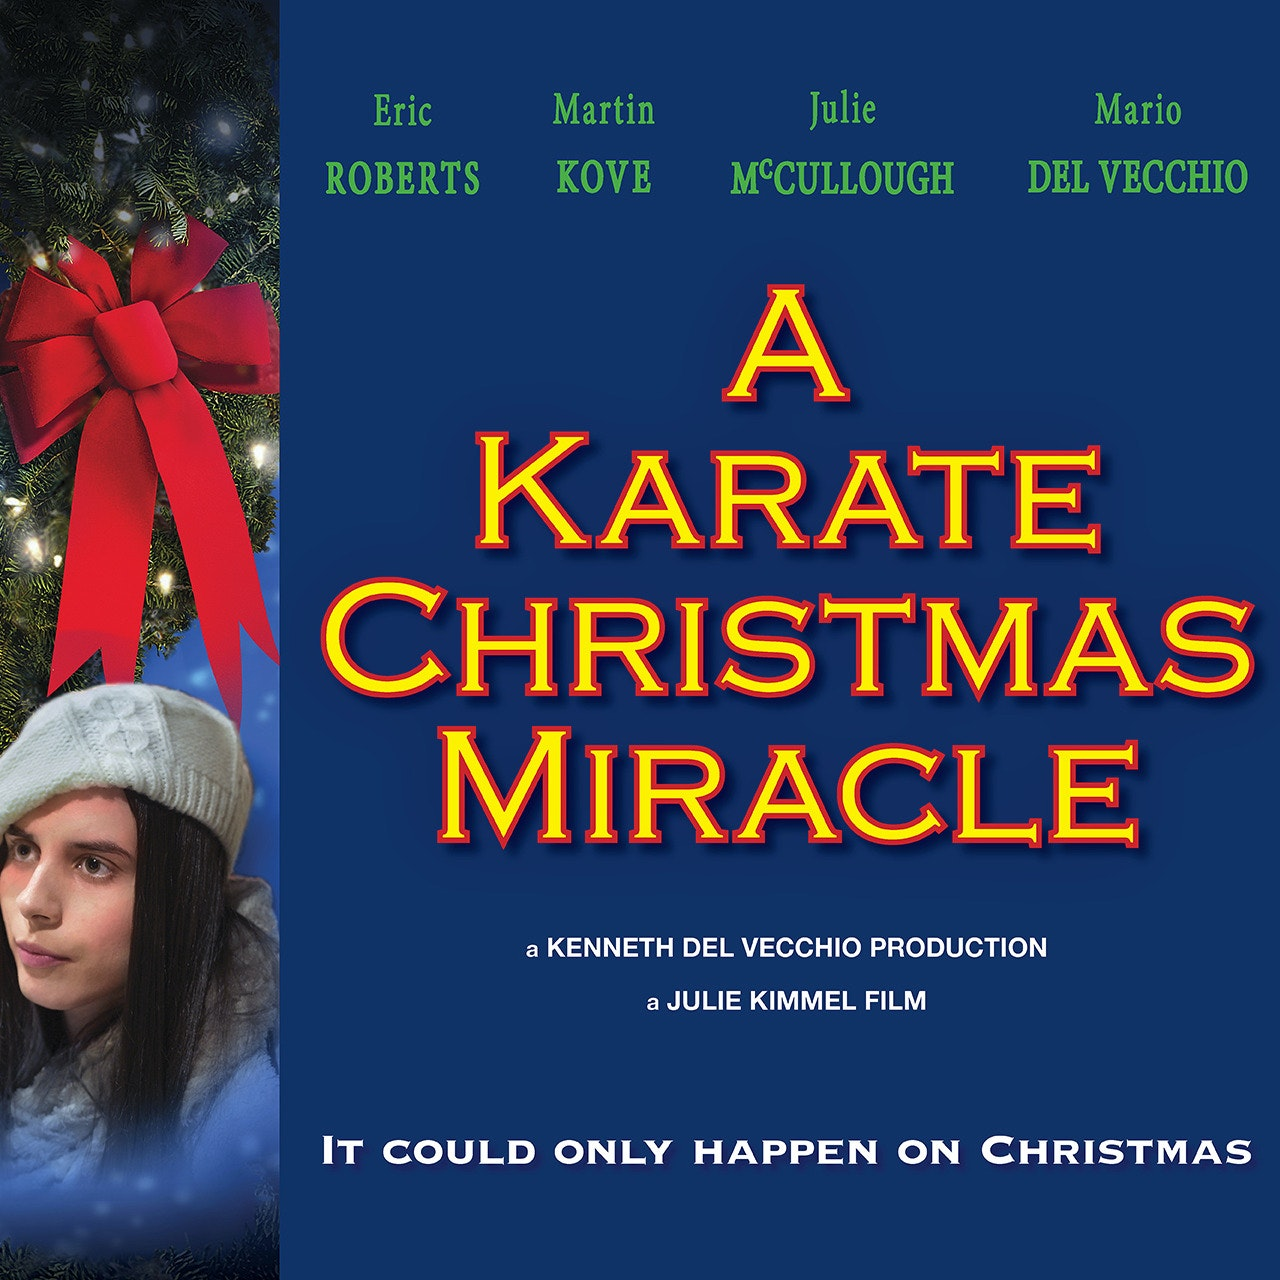 Karate Christmas Miracle